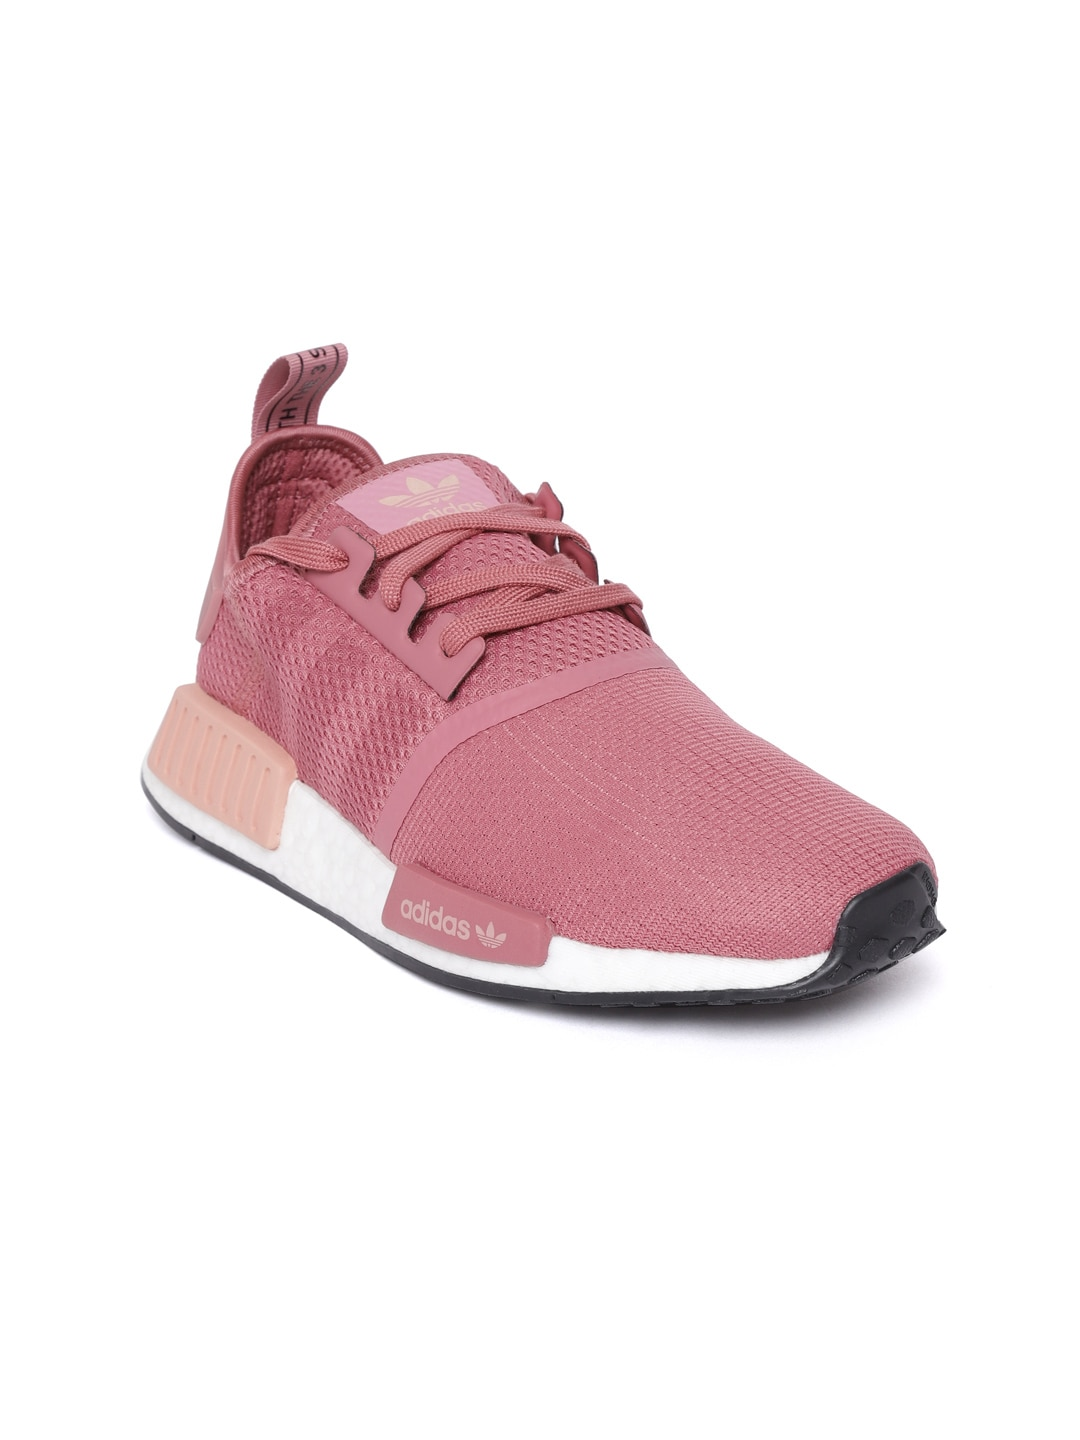 e13491eb7 Adidas Originals Nmdr1 Pink Sneakers for women - Get stylish shoes ...